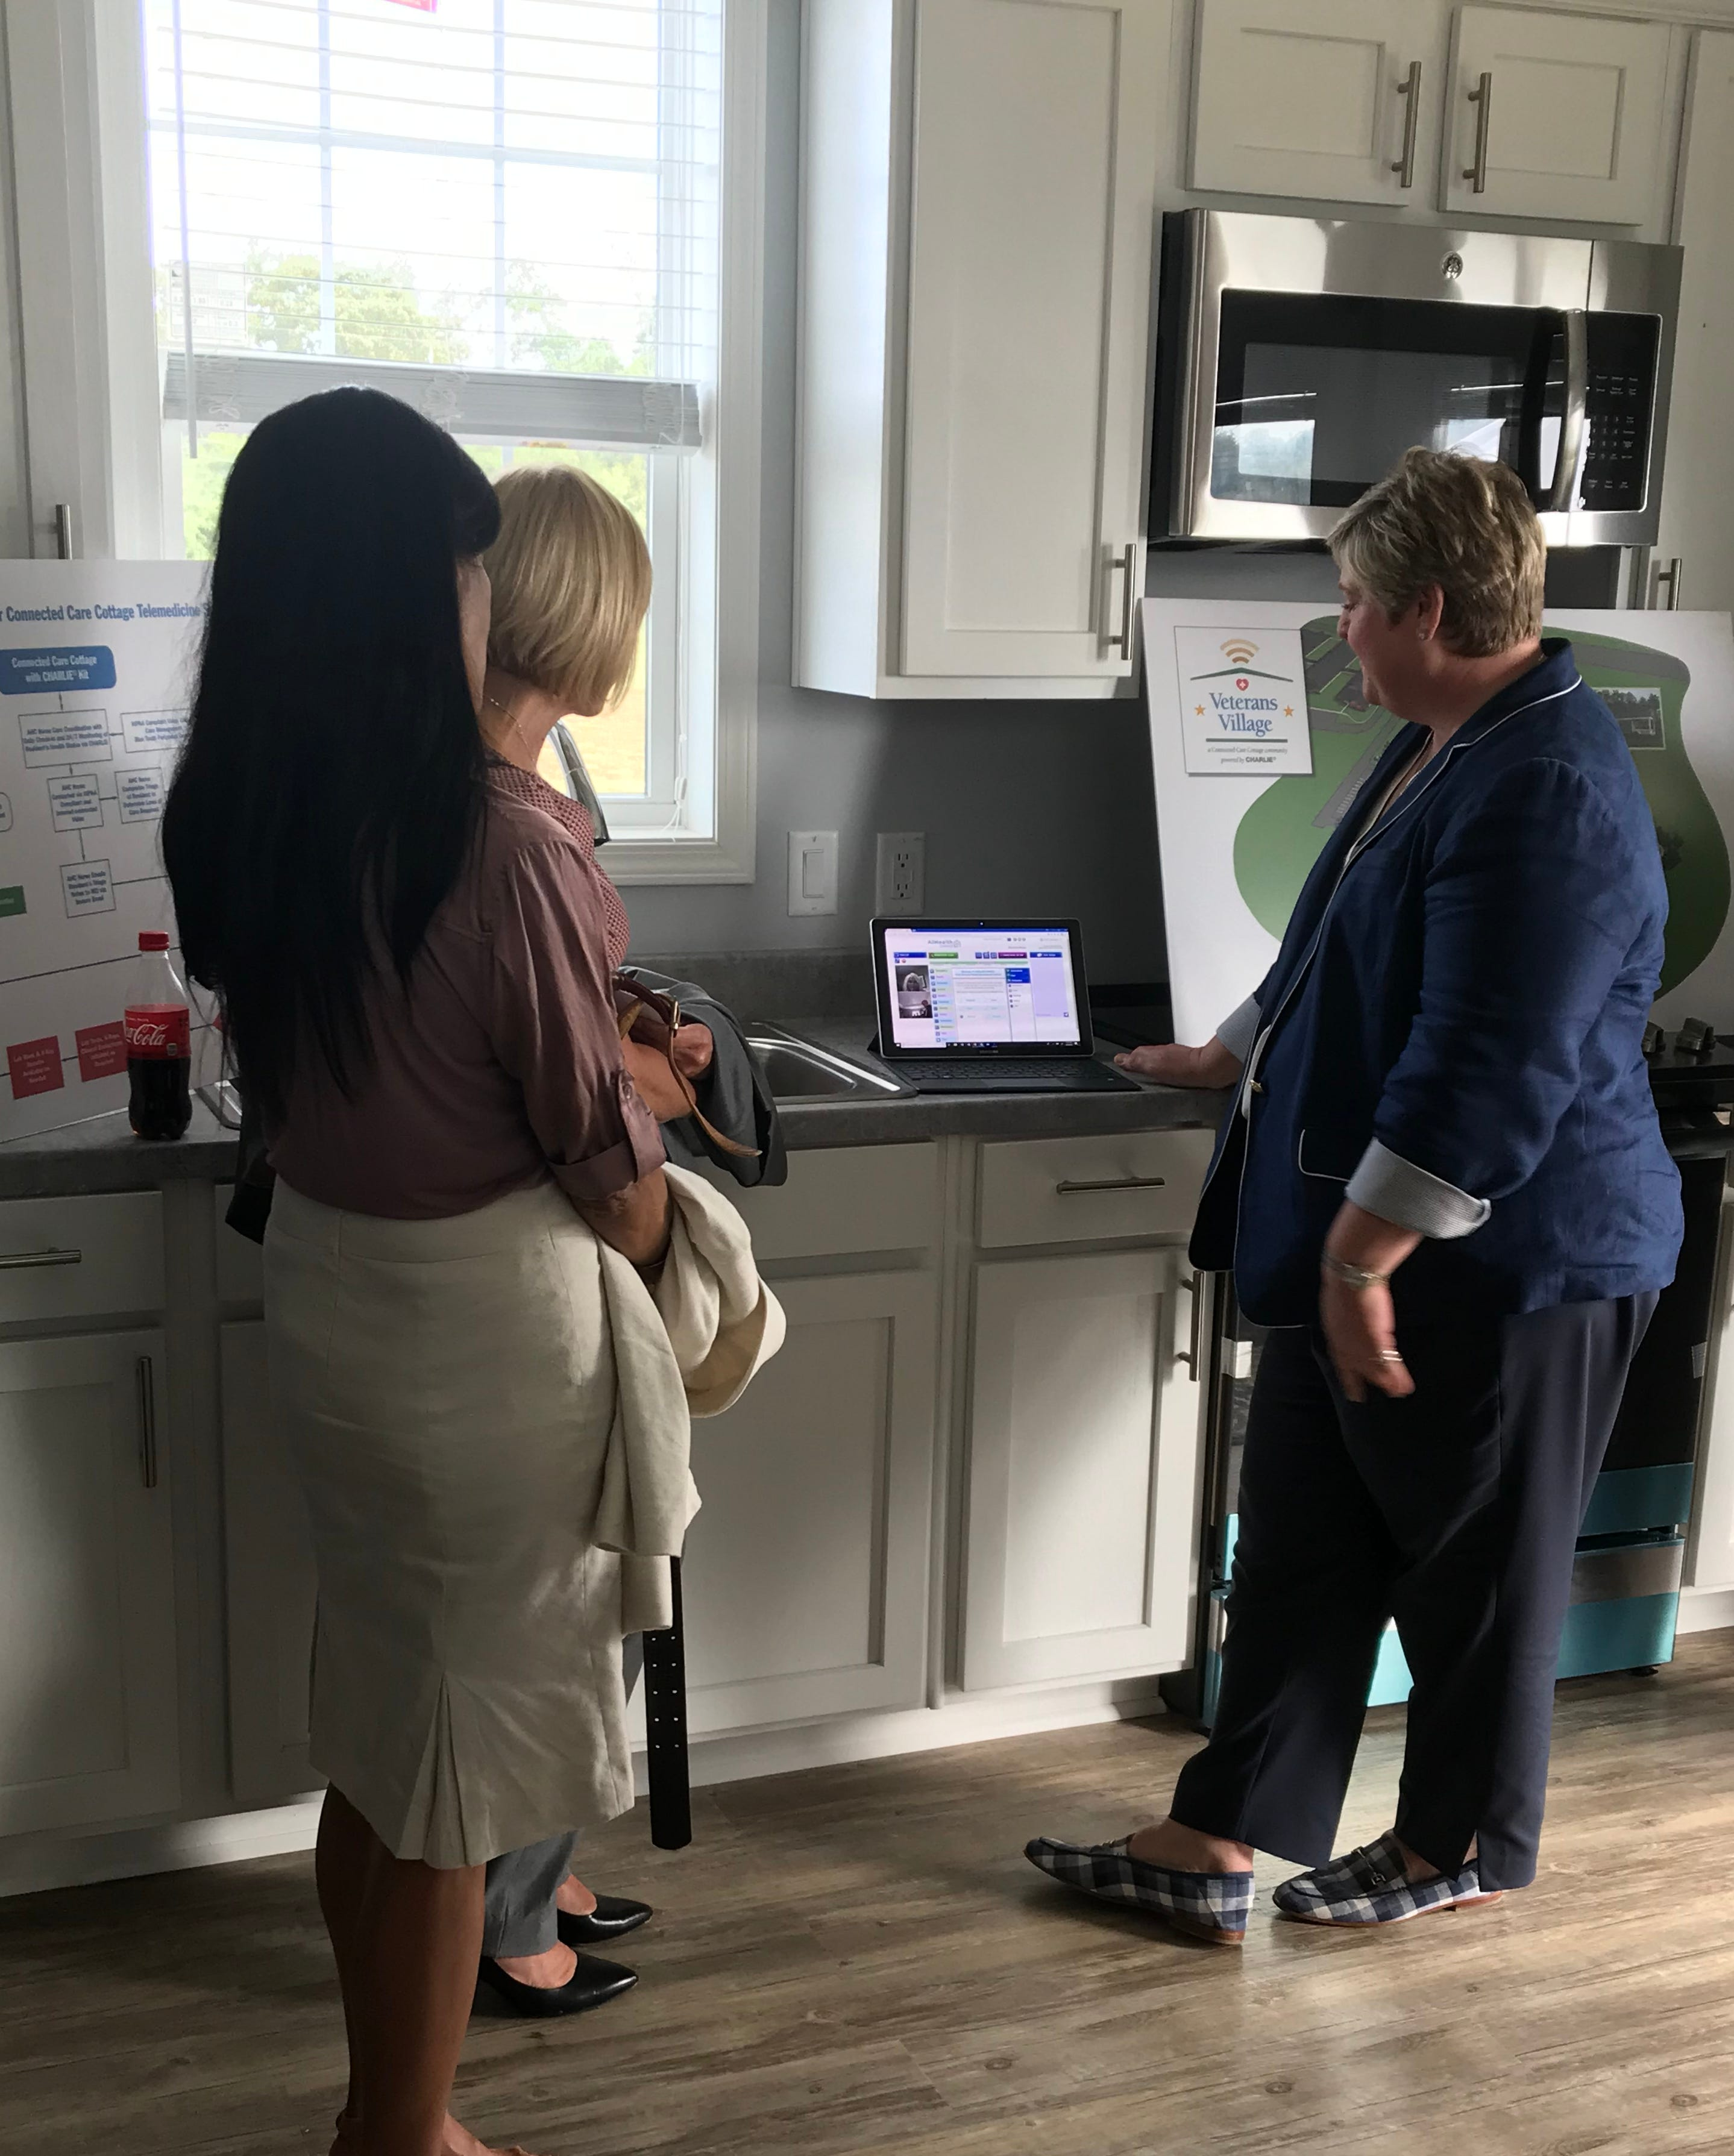 Juliette Simpson explains the technology behind the homes